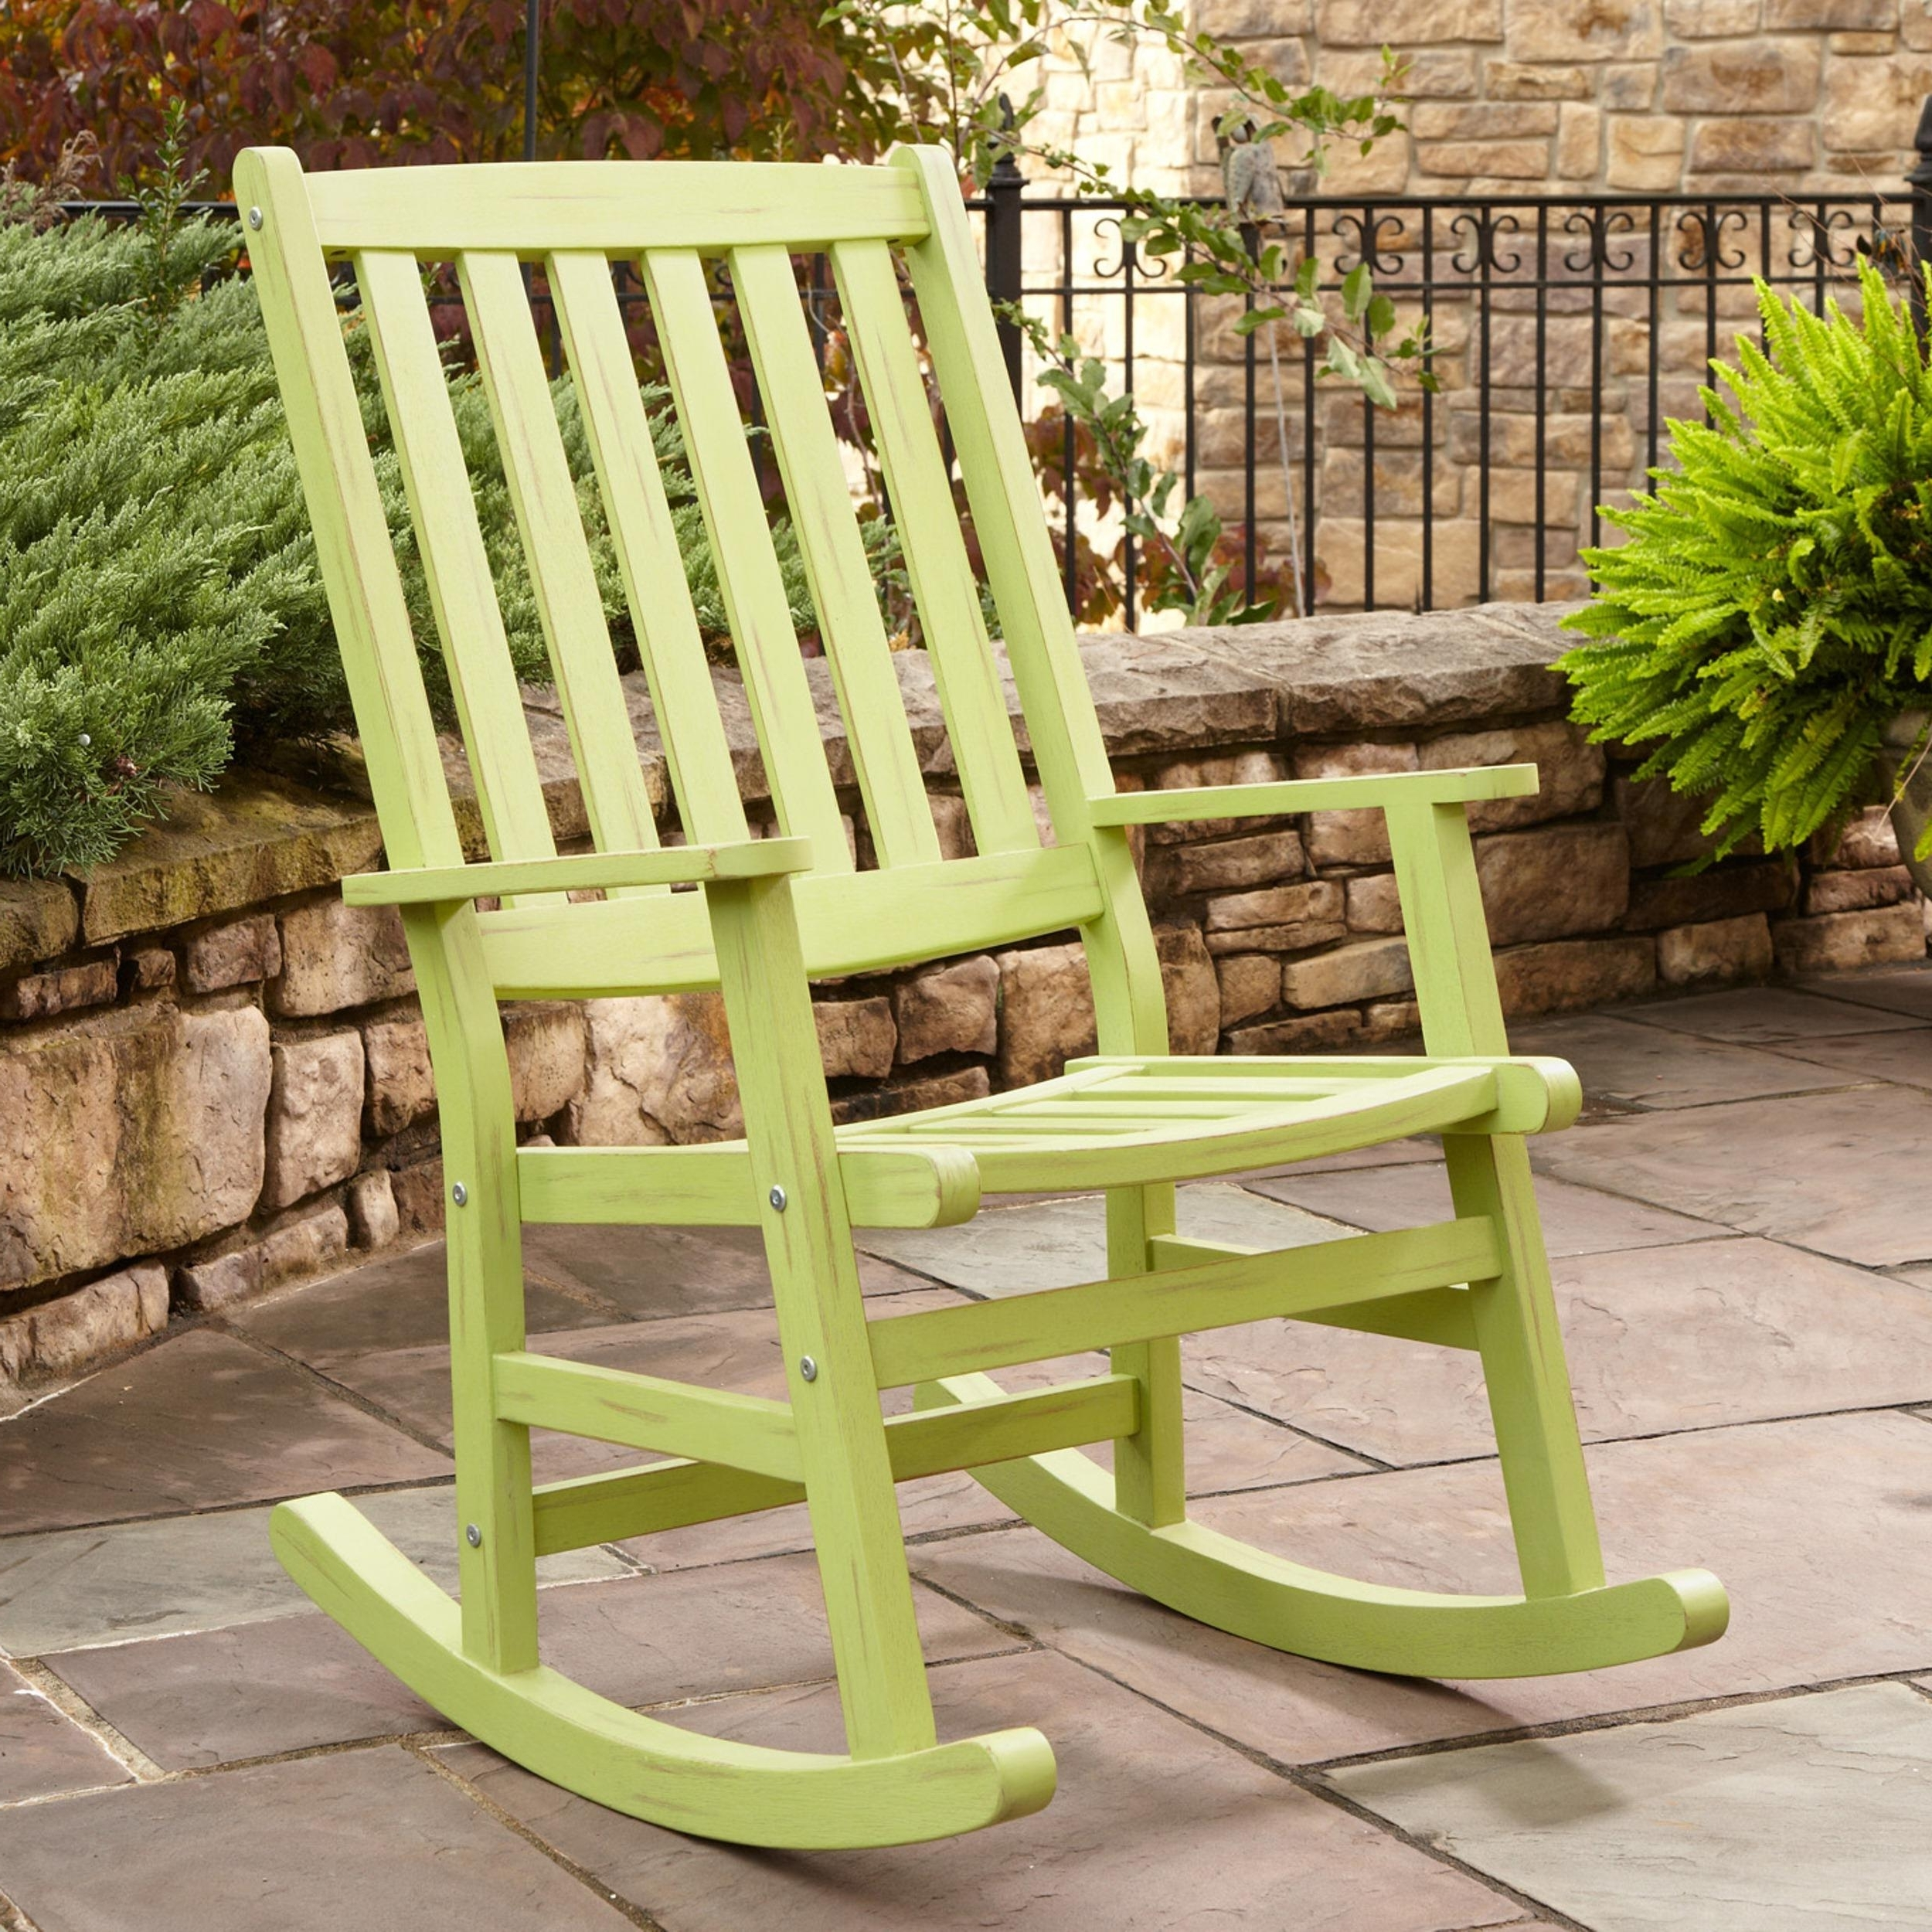 Outdoor Patio Metal Rocking Chairs Pertaining To 2019 Livingroom : Patio Dining Sets With Rocking Chairs Lowes Wicker (View 14 of 20)